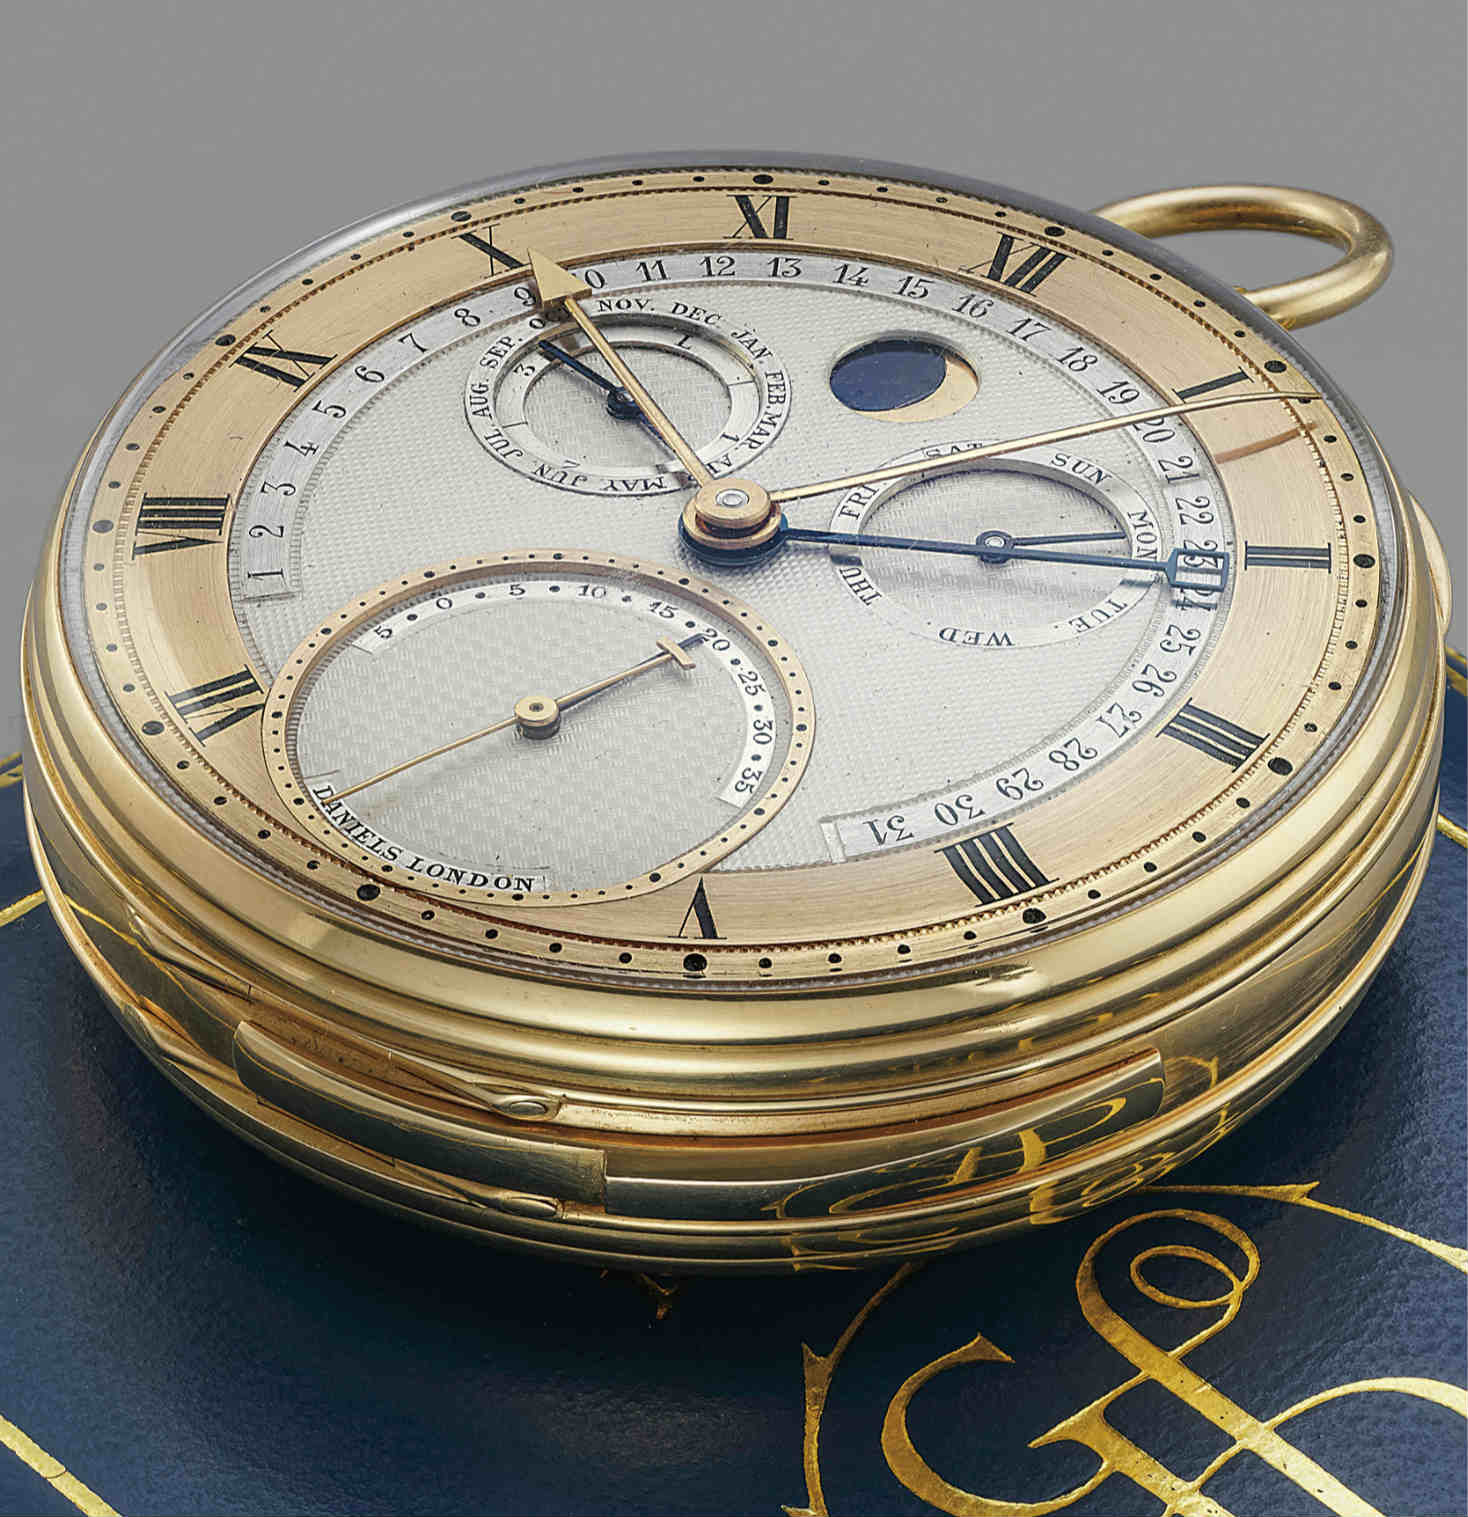 Geneva auction George Daniels Grand Complication pocket watch